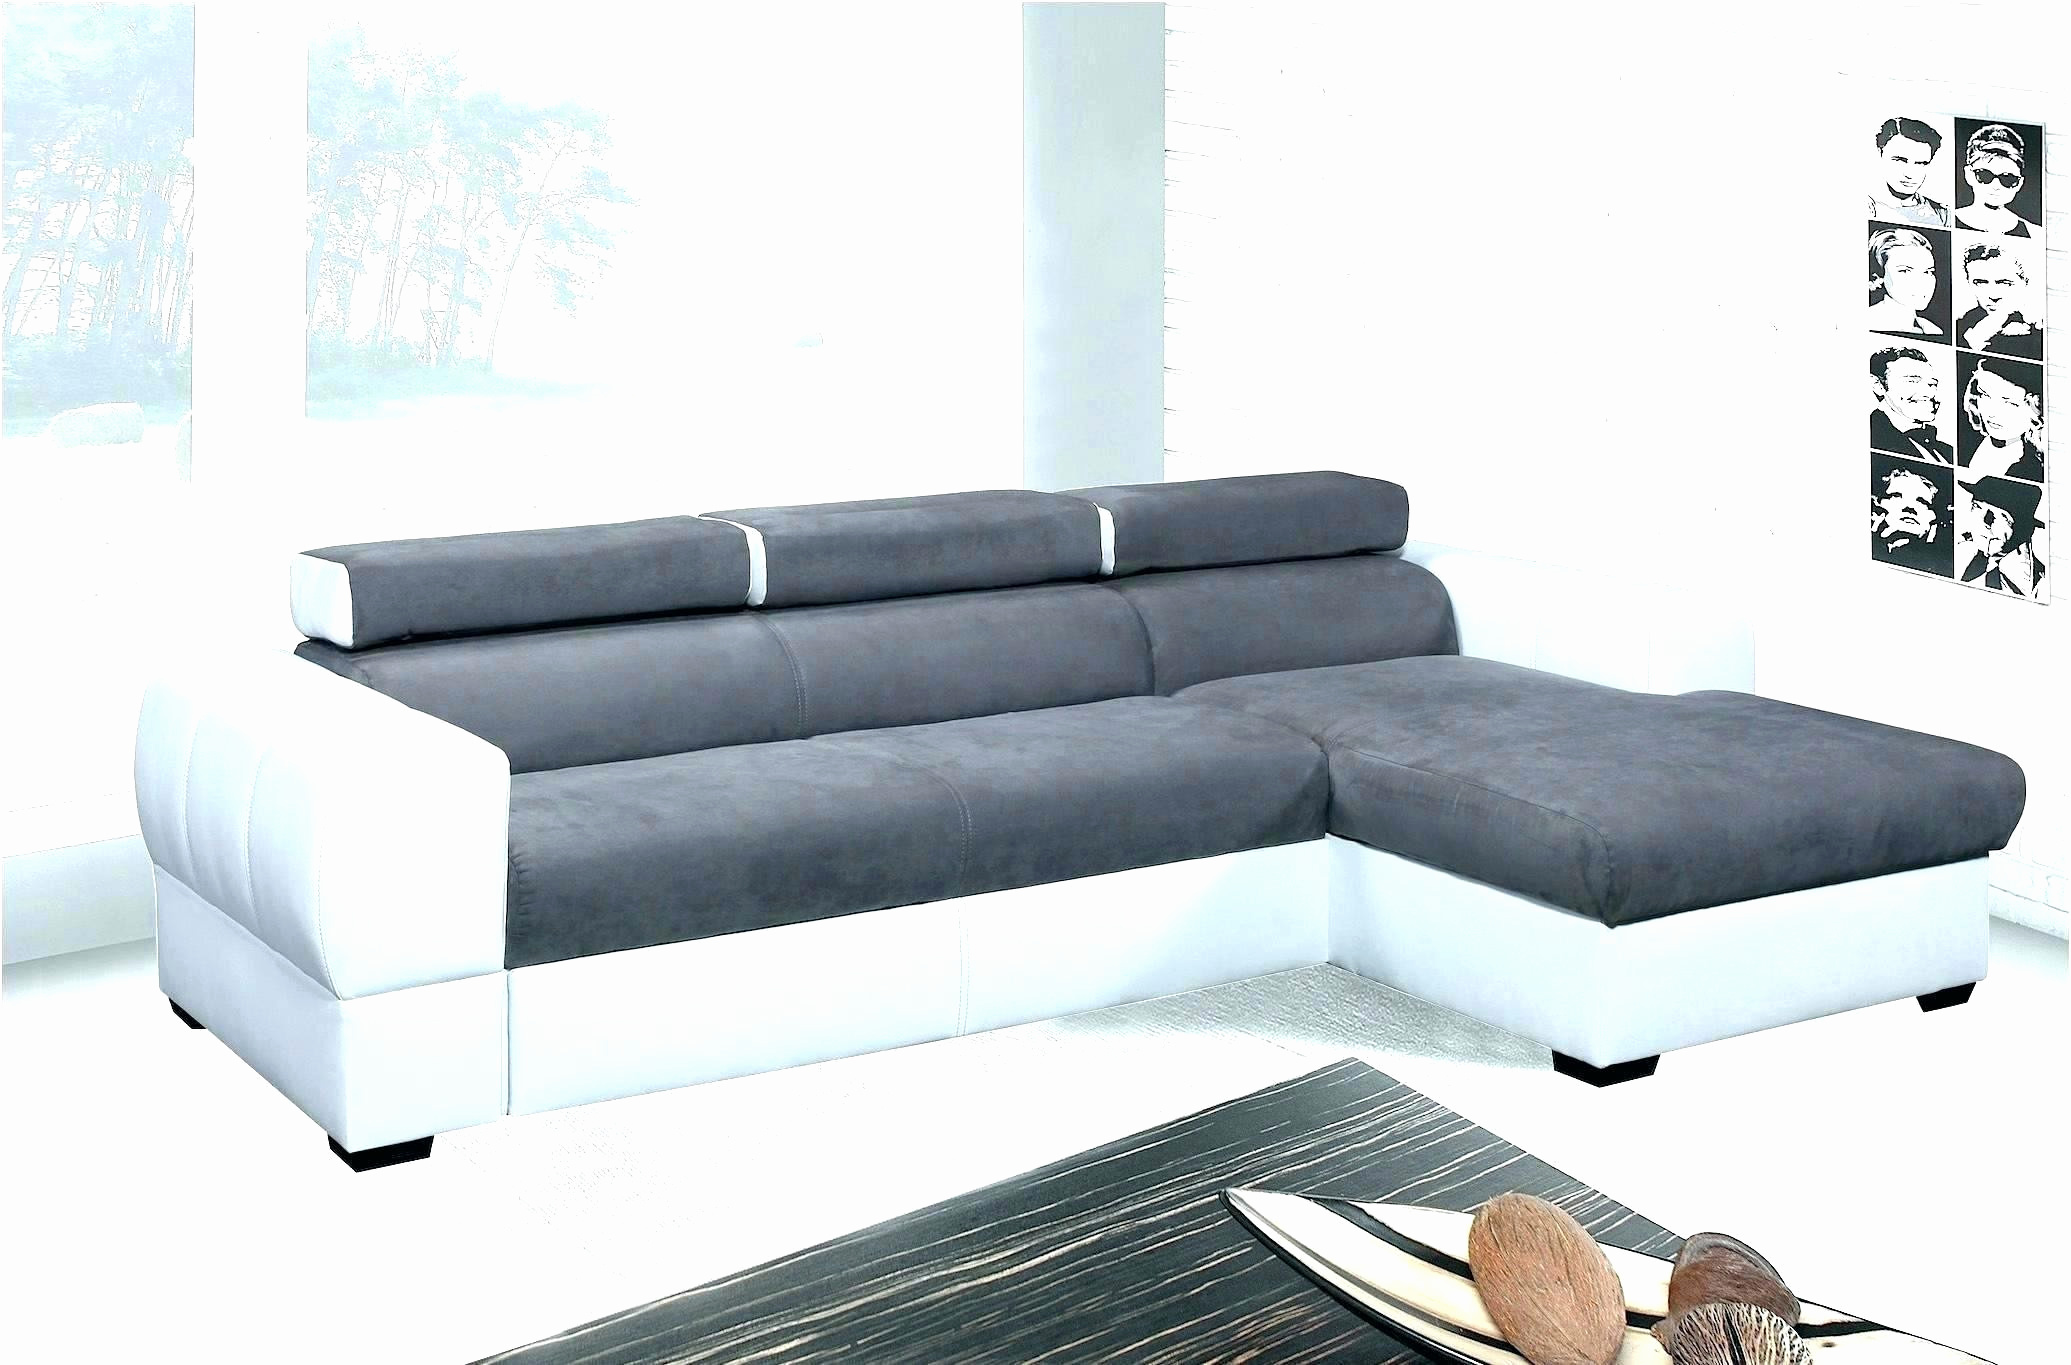 decoration salon canape gris luxe 35 beau canape lit futon idees inspirantes of decoration salon canape gris